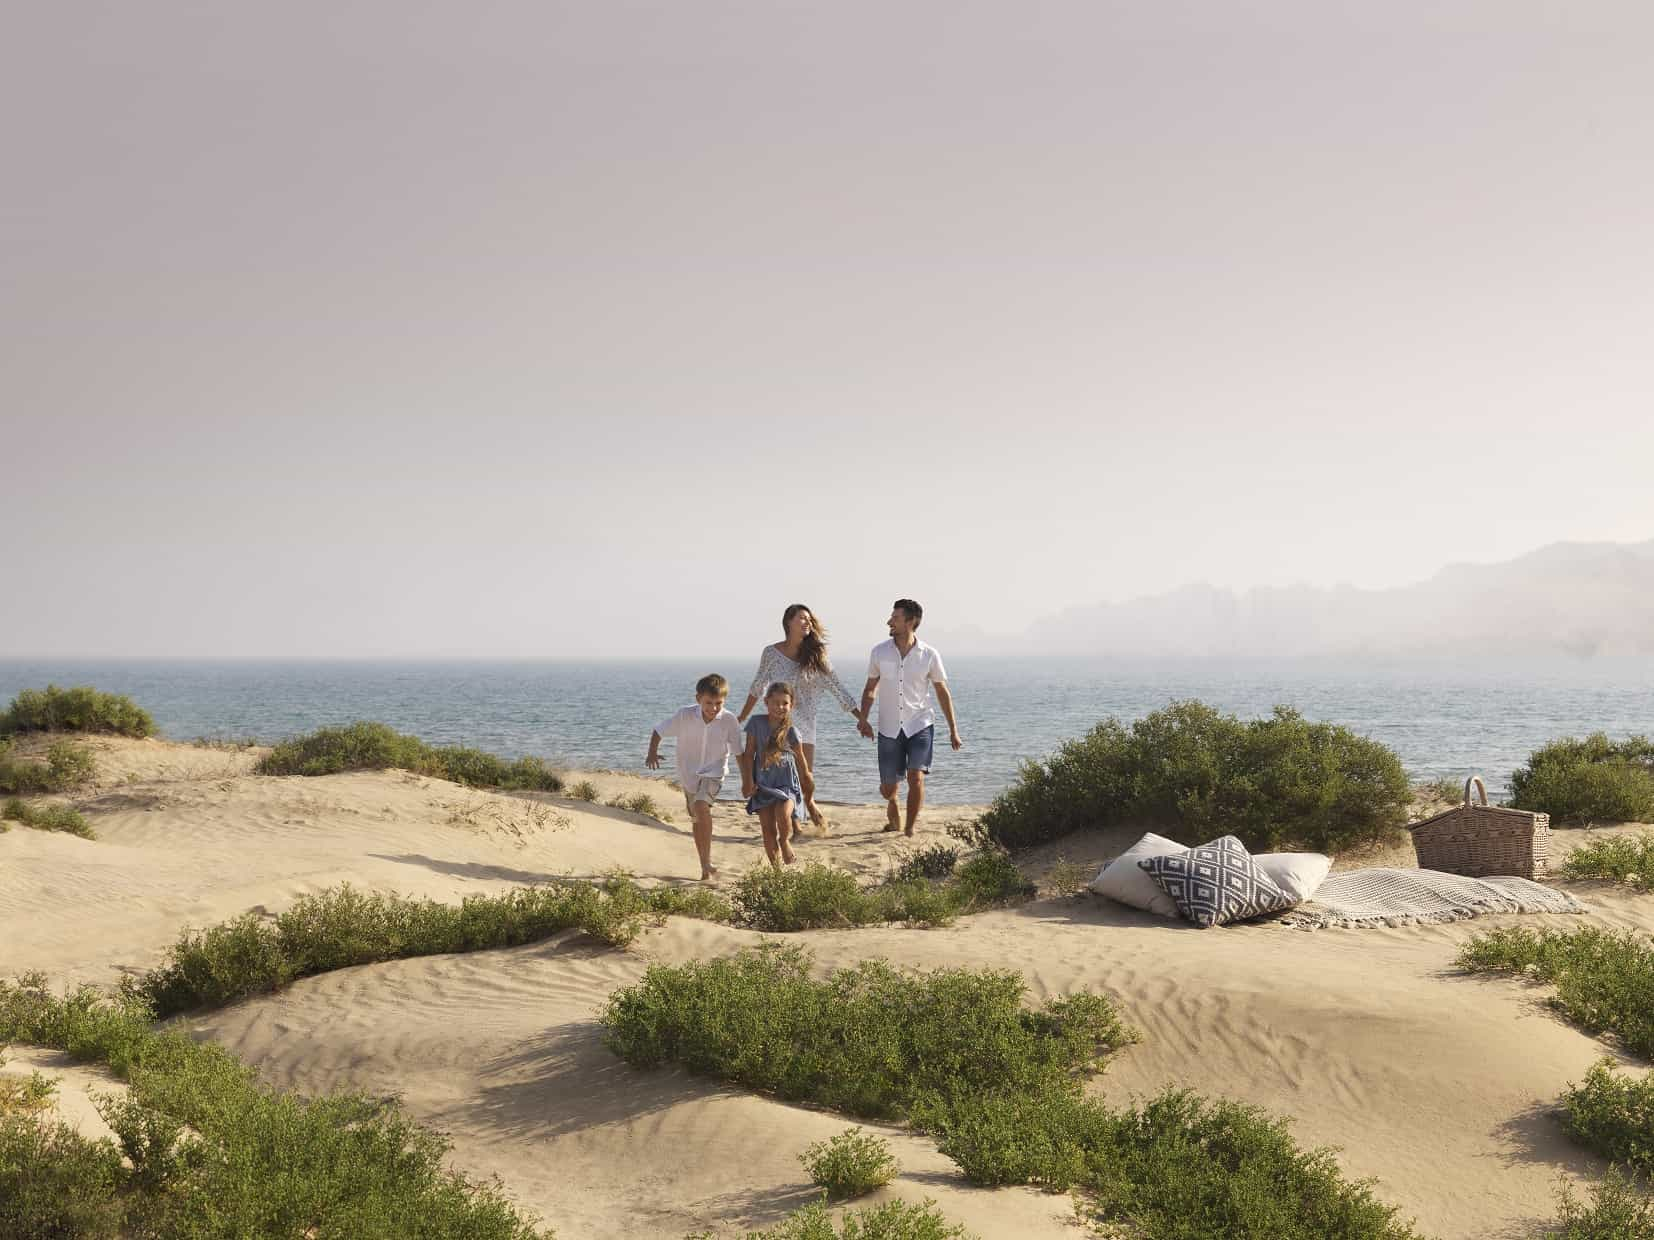 Ras Al Khaimah Tourism Development Authority strengthens focus on the Central and Eastern Europe Region